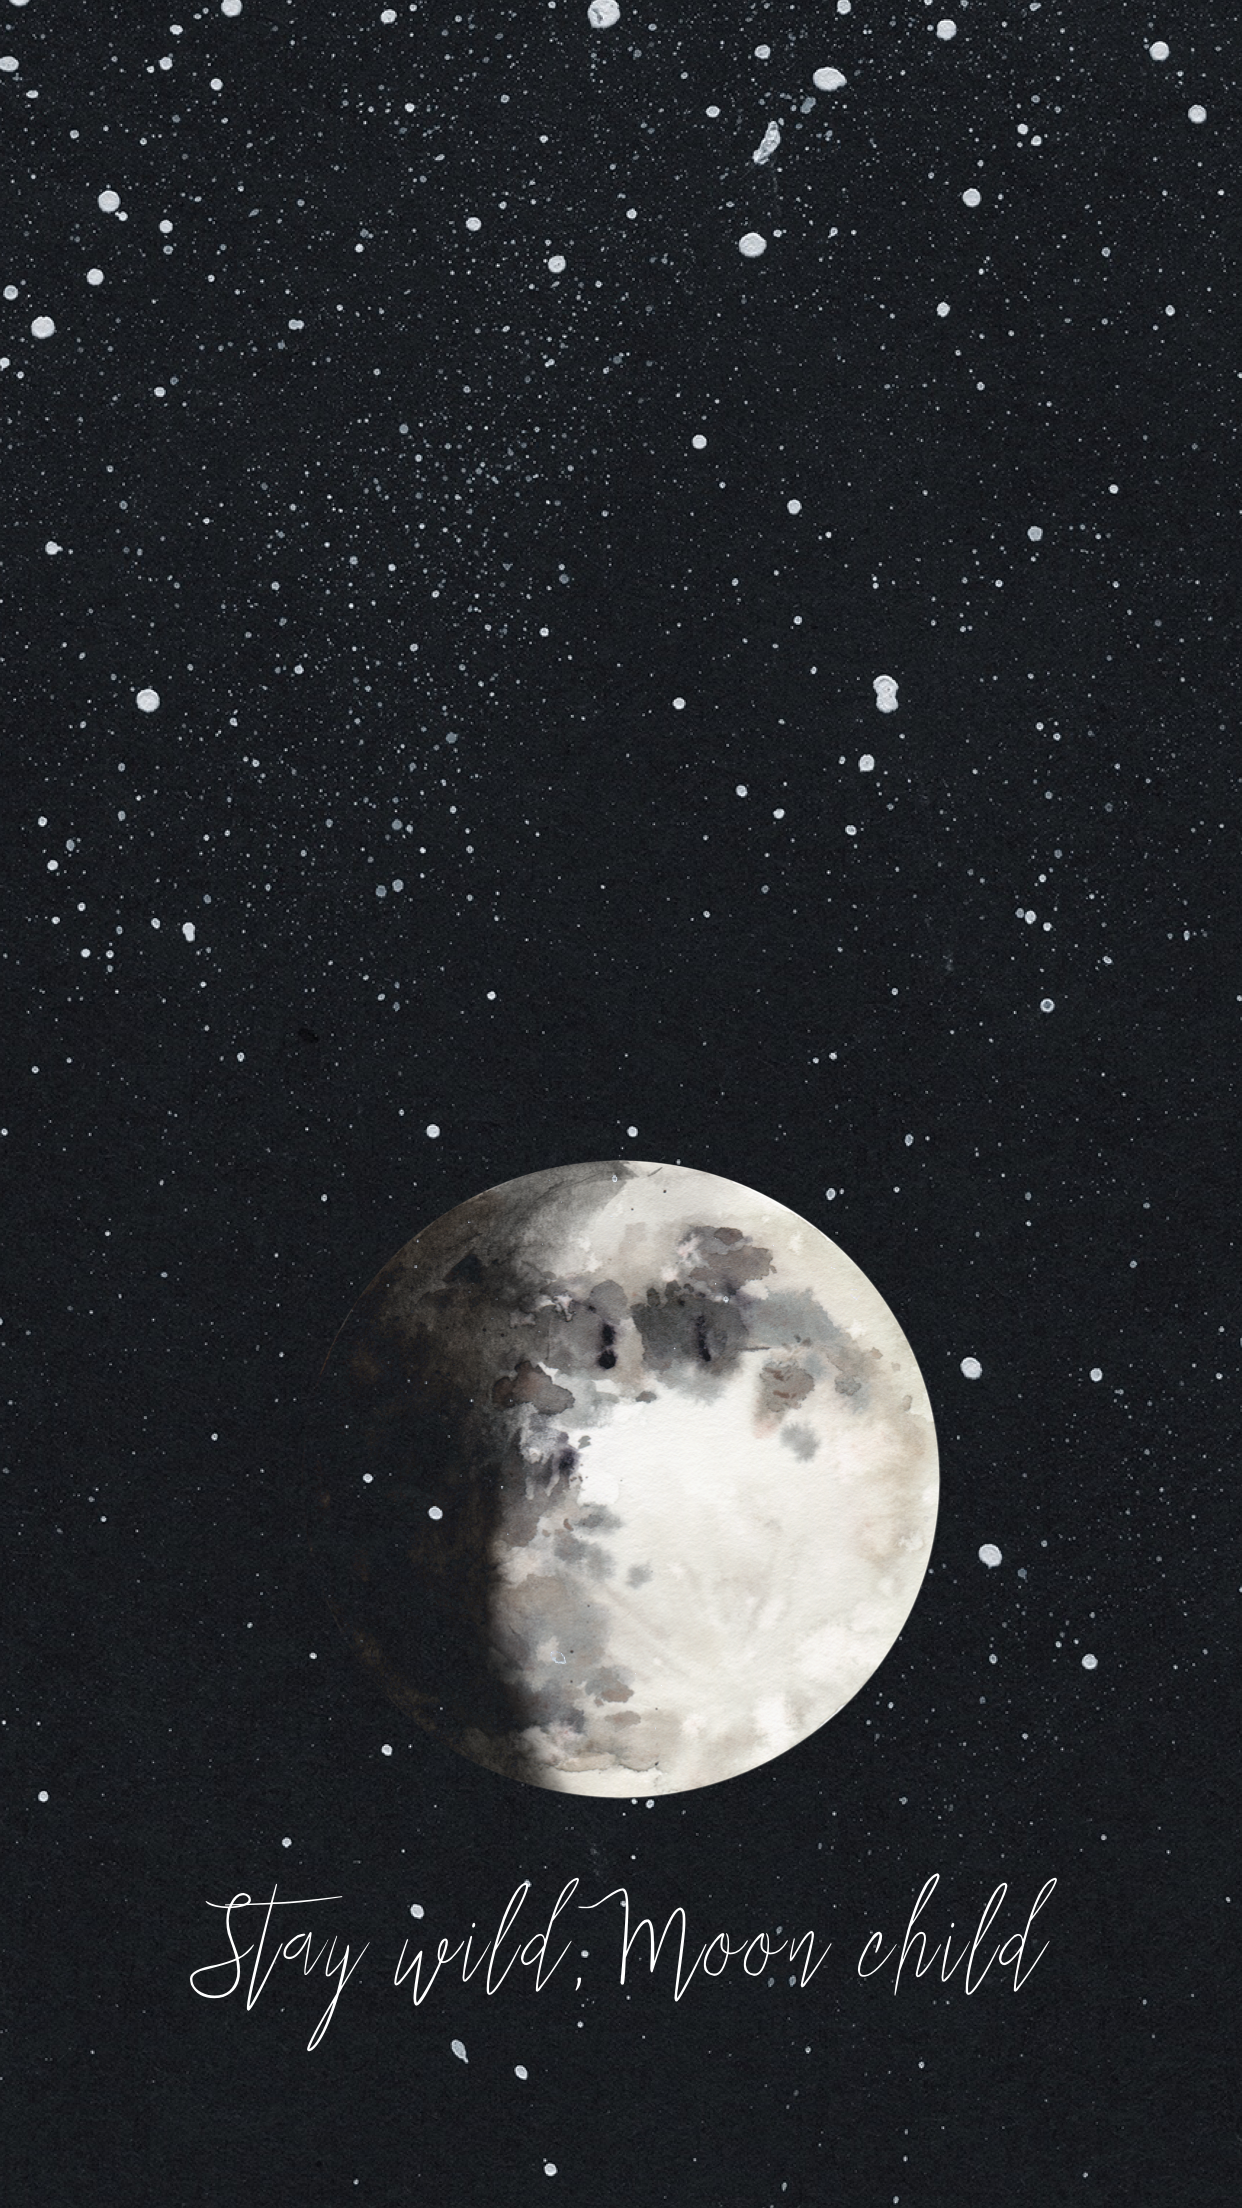 Arvo Be Good Do Good Use Arvopins20 For 20 Off Your First Order Arvowear A Witchy Wallpaper Wallpaper Iphone Quotes Backgrounds Iphone Wallpaper Moon